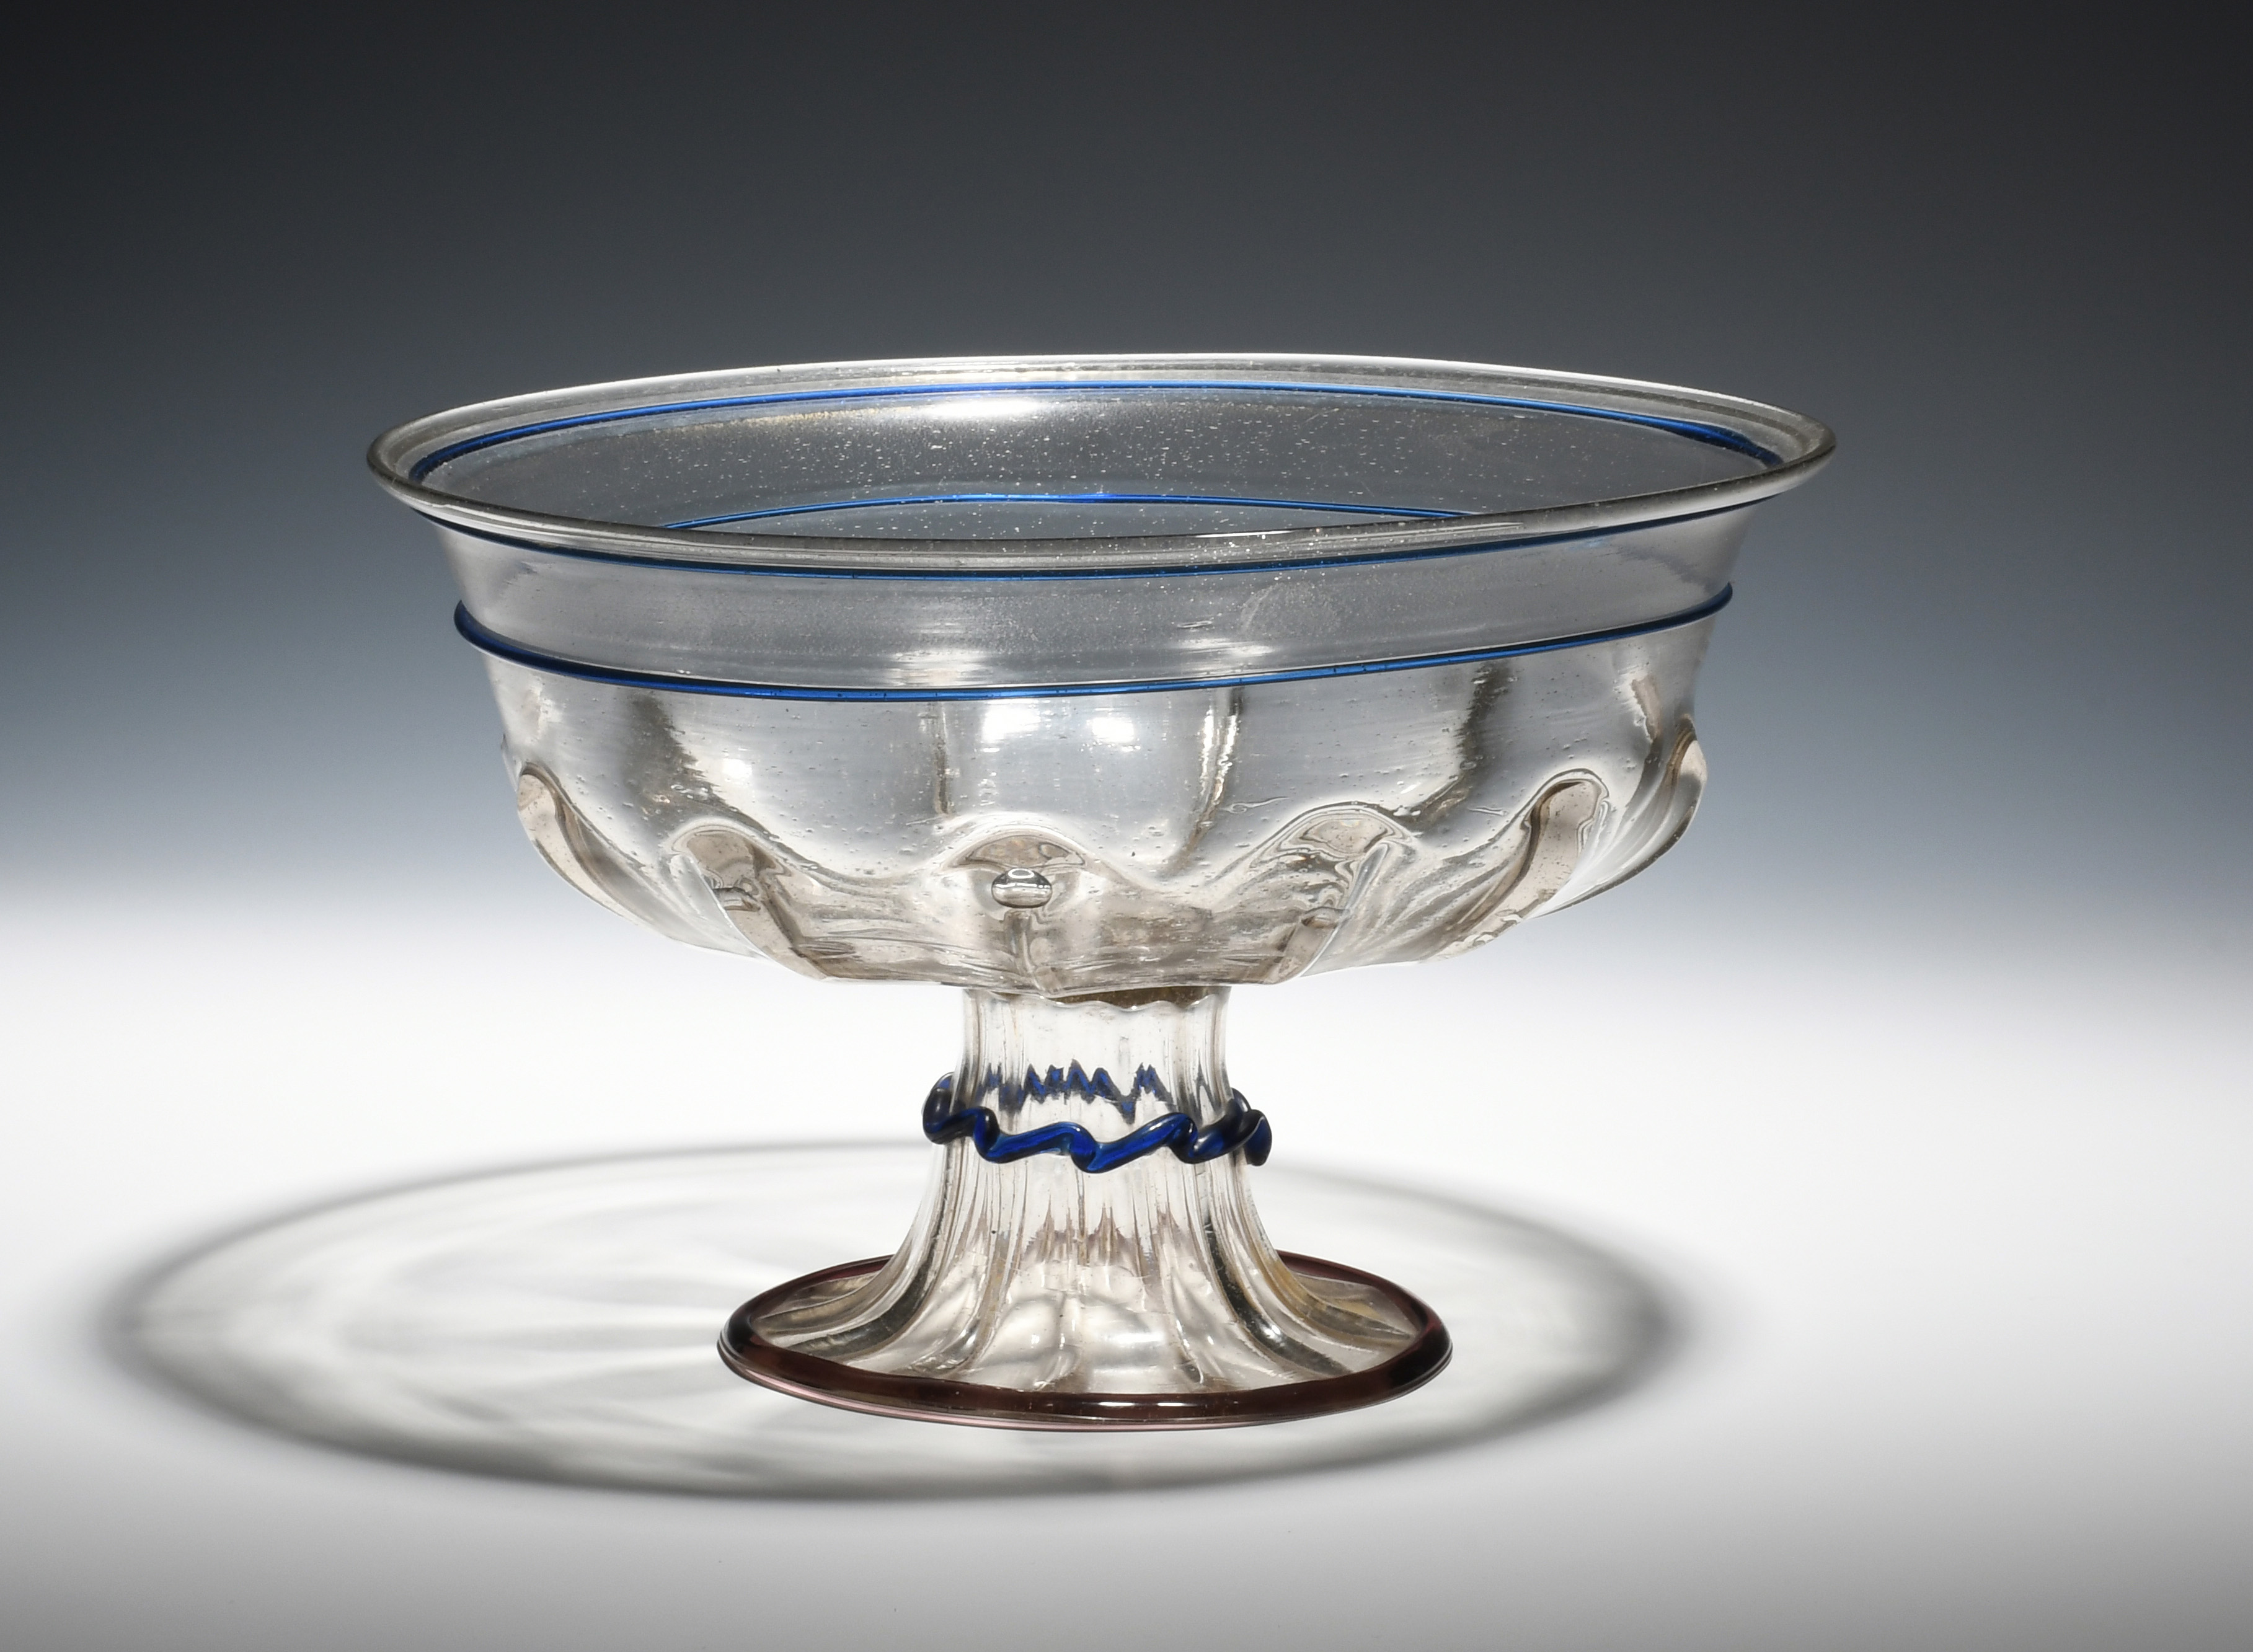 A large façon de Venise footed bowl 15th/16th century, moulded to the underside of the bowl with